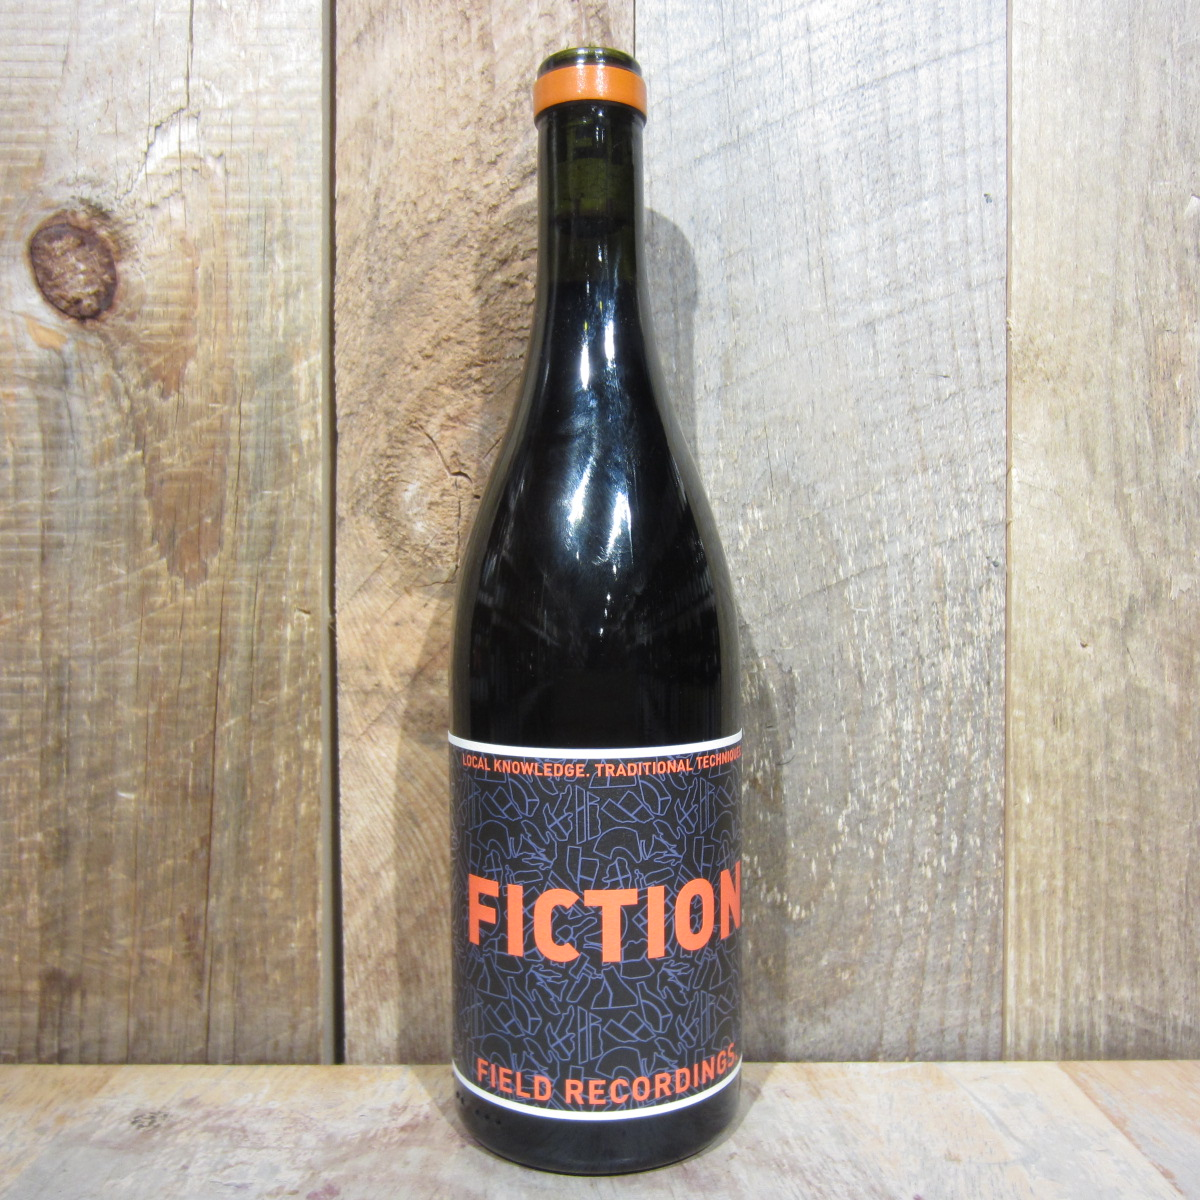 Field Recordings Fiction Red 2018 750ml